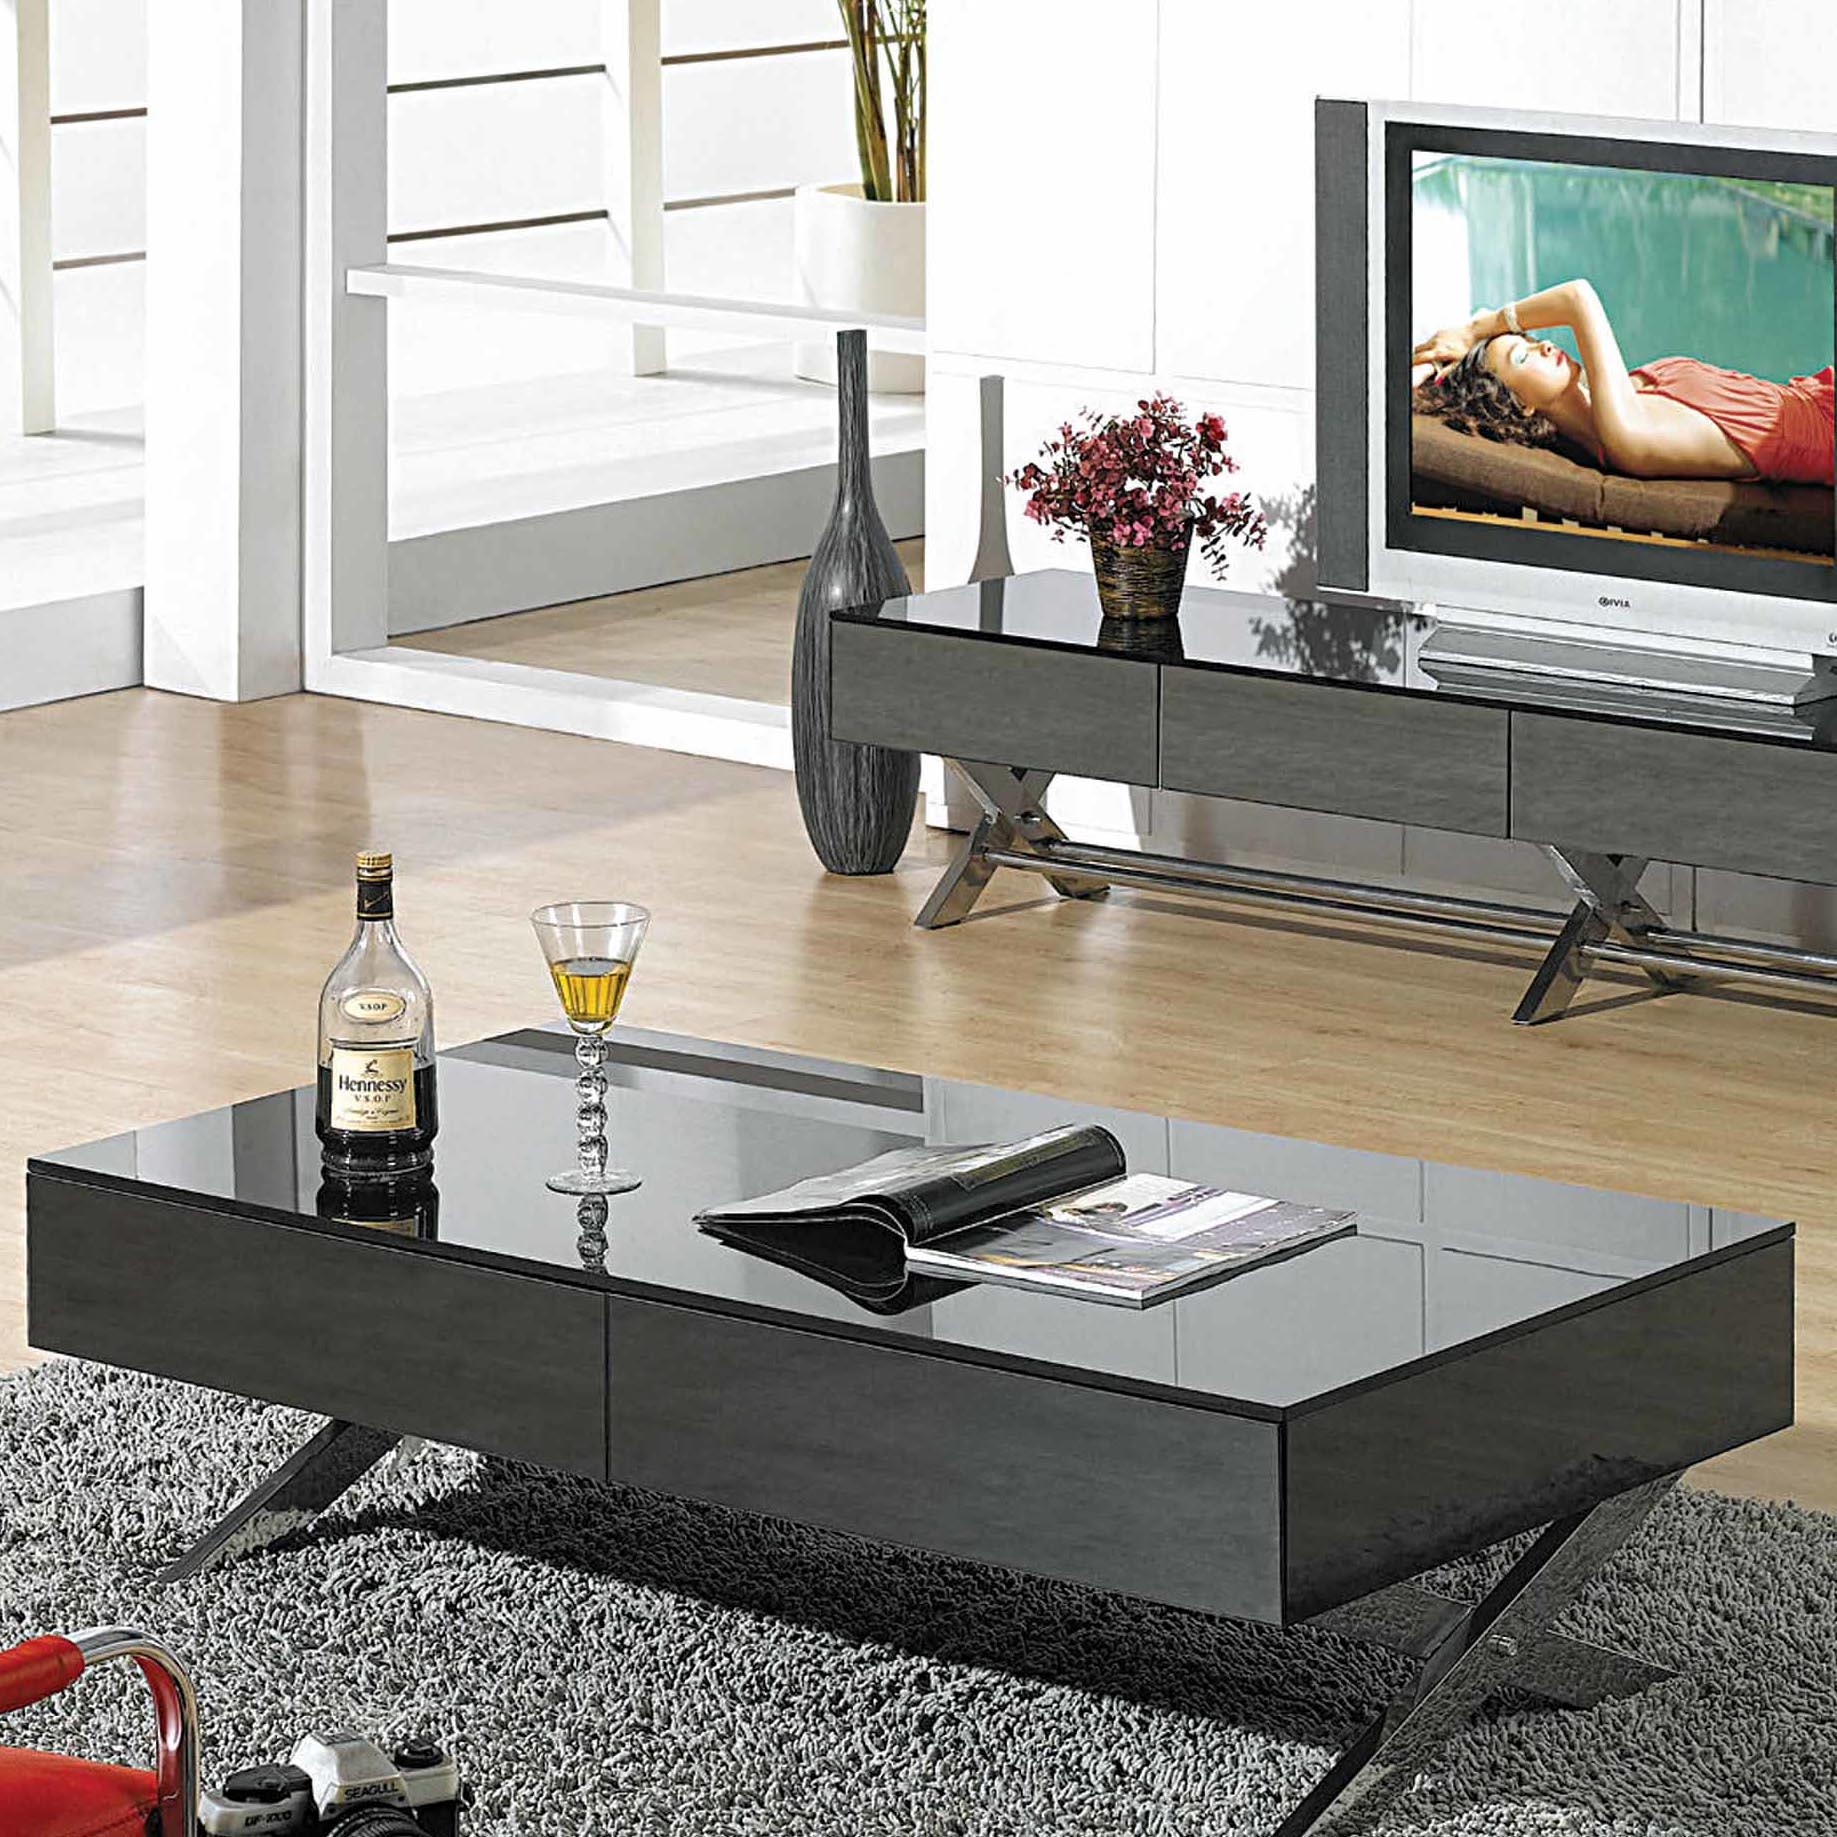 Best Modern Coffee Table Coffee Table Design Ideas Best Coffee Table Ideas Part 2